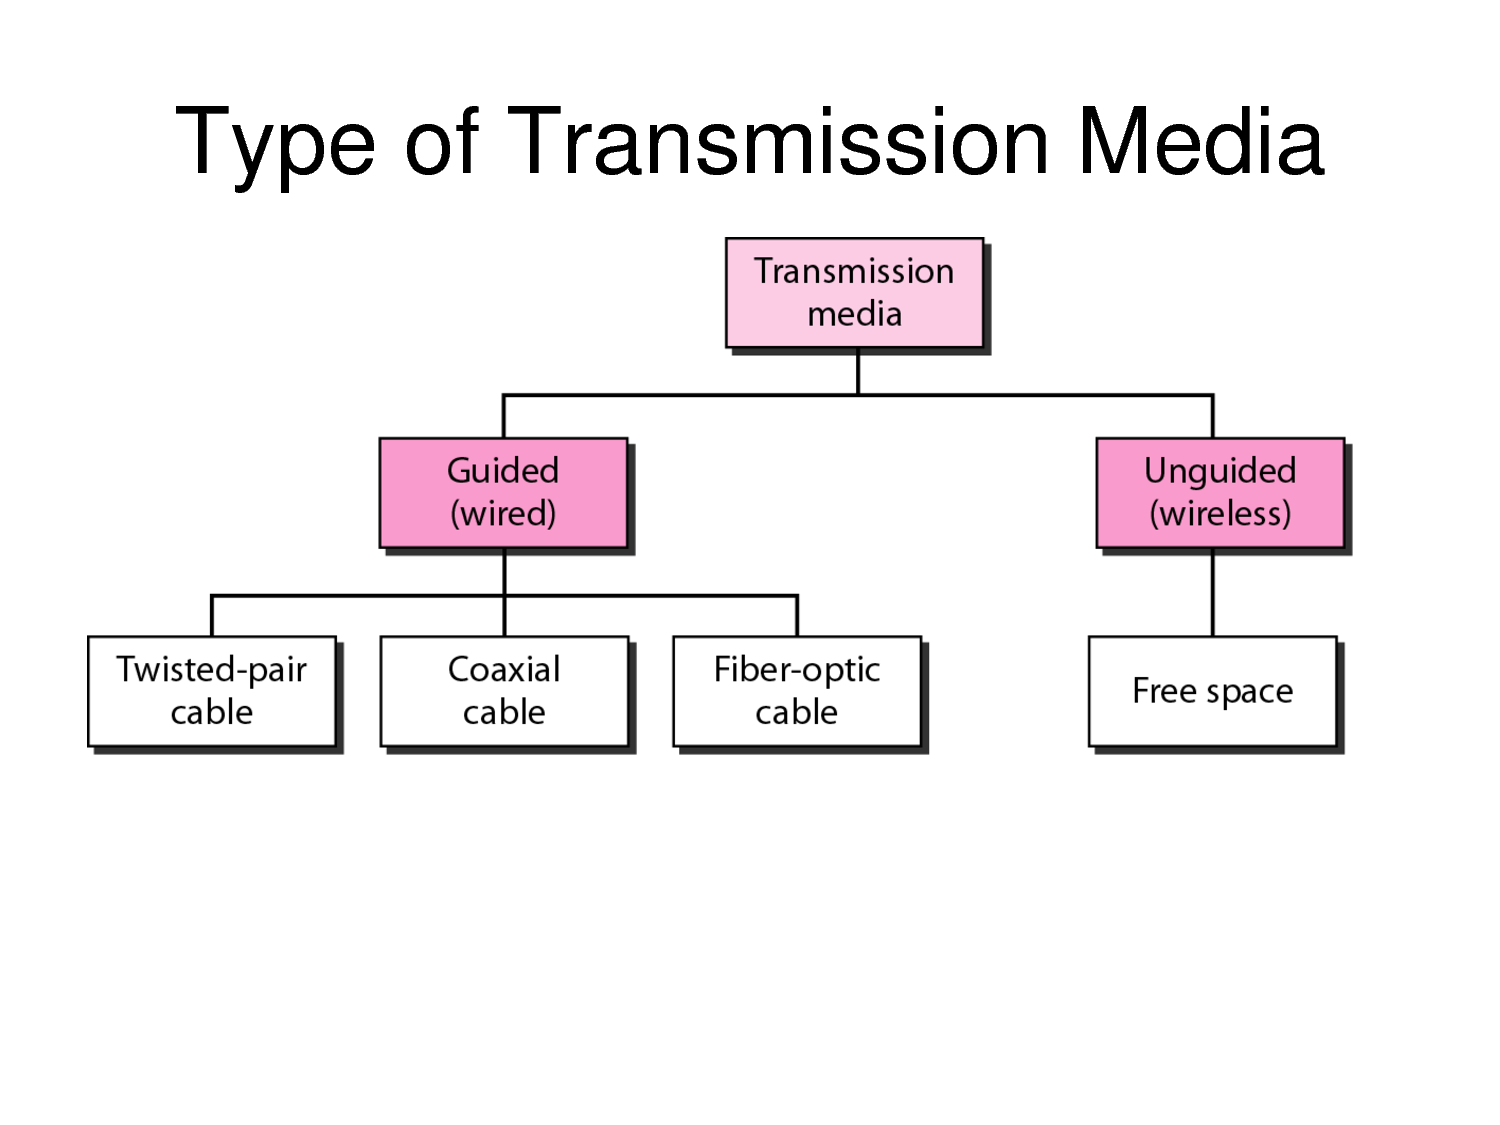 types of wireless communication In recent years an efficient design of a wireless sensor network has become a leading area of research a sensor is a device that responds and detects some type of input from both the physical or environmental conditions, such as pressure, heat, light, etc.